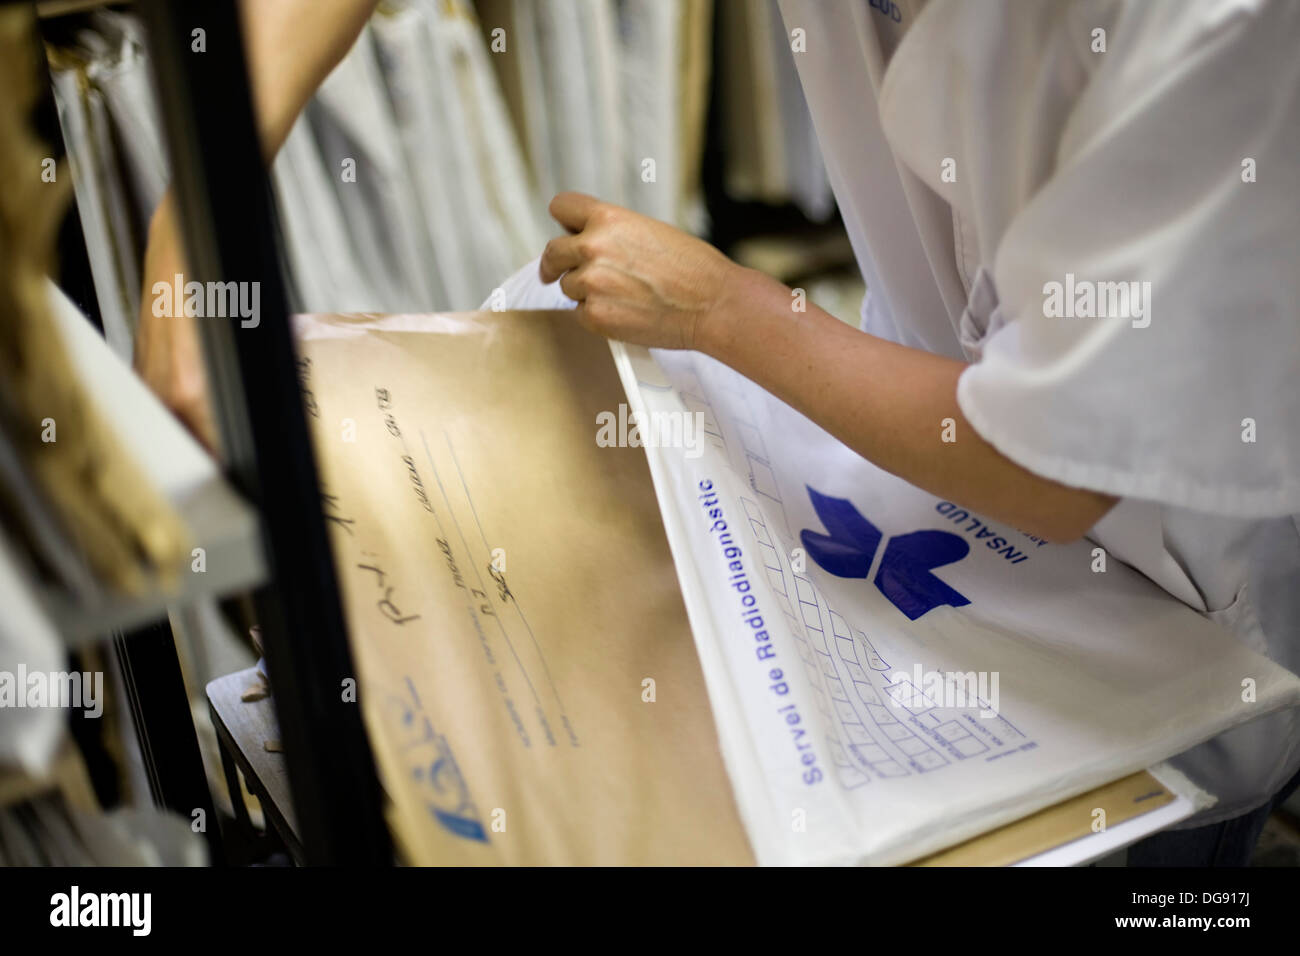 Nurse with radiography files - Stock Image